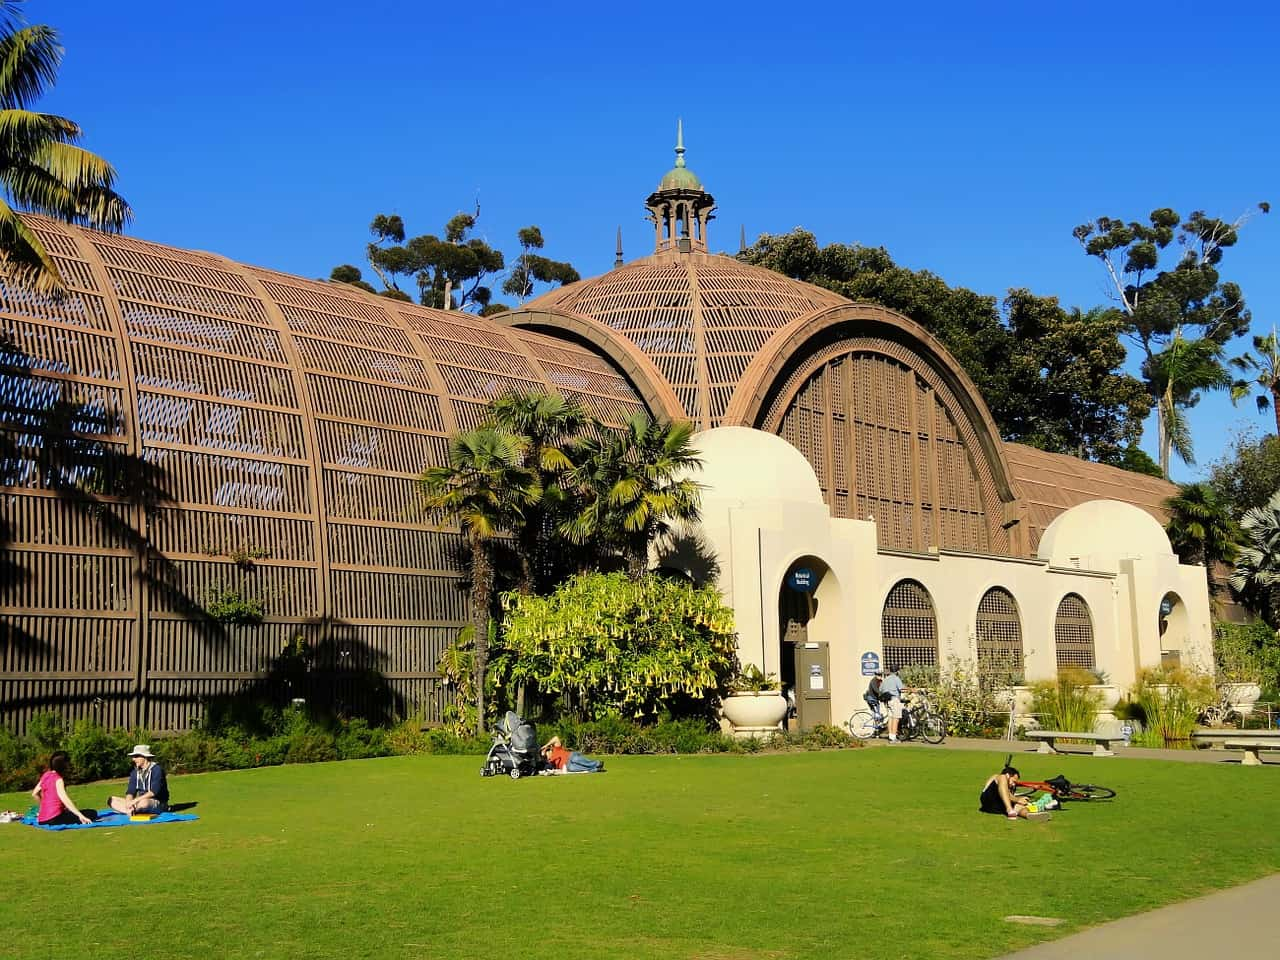 A curved shaped building in Balboa Park San Diego California